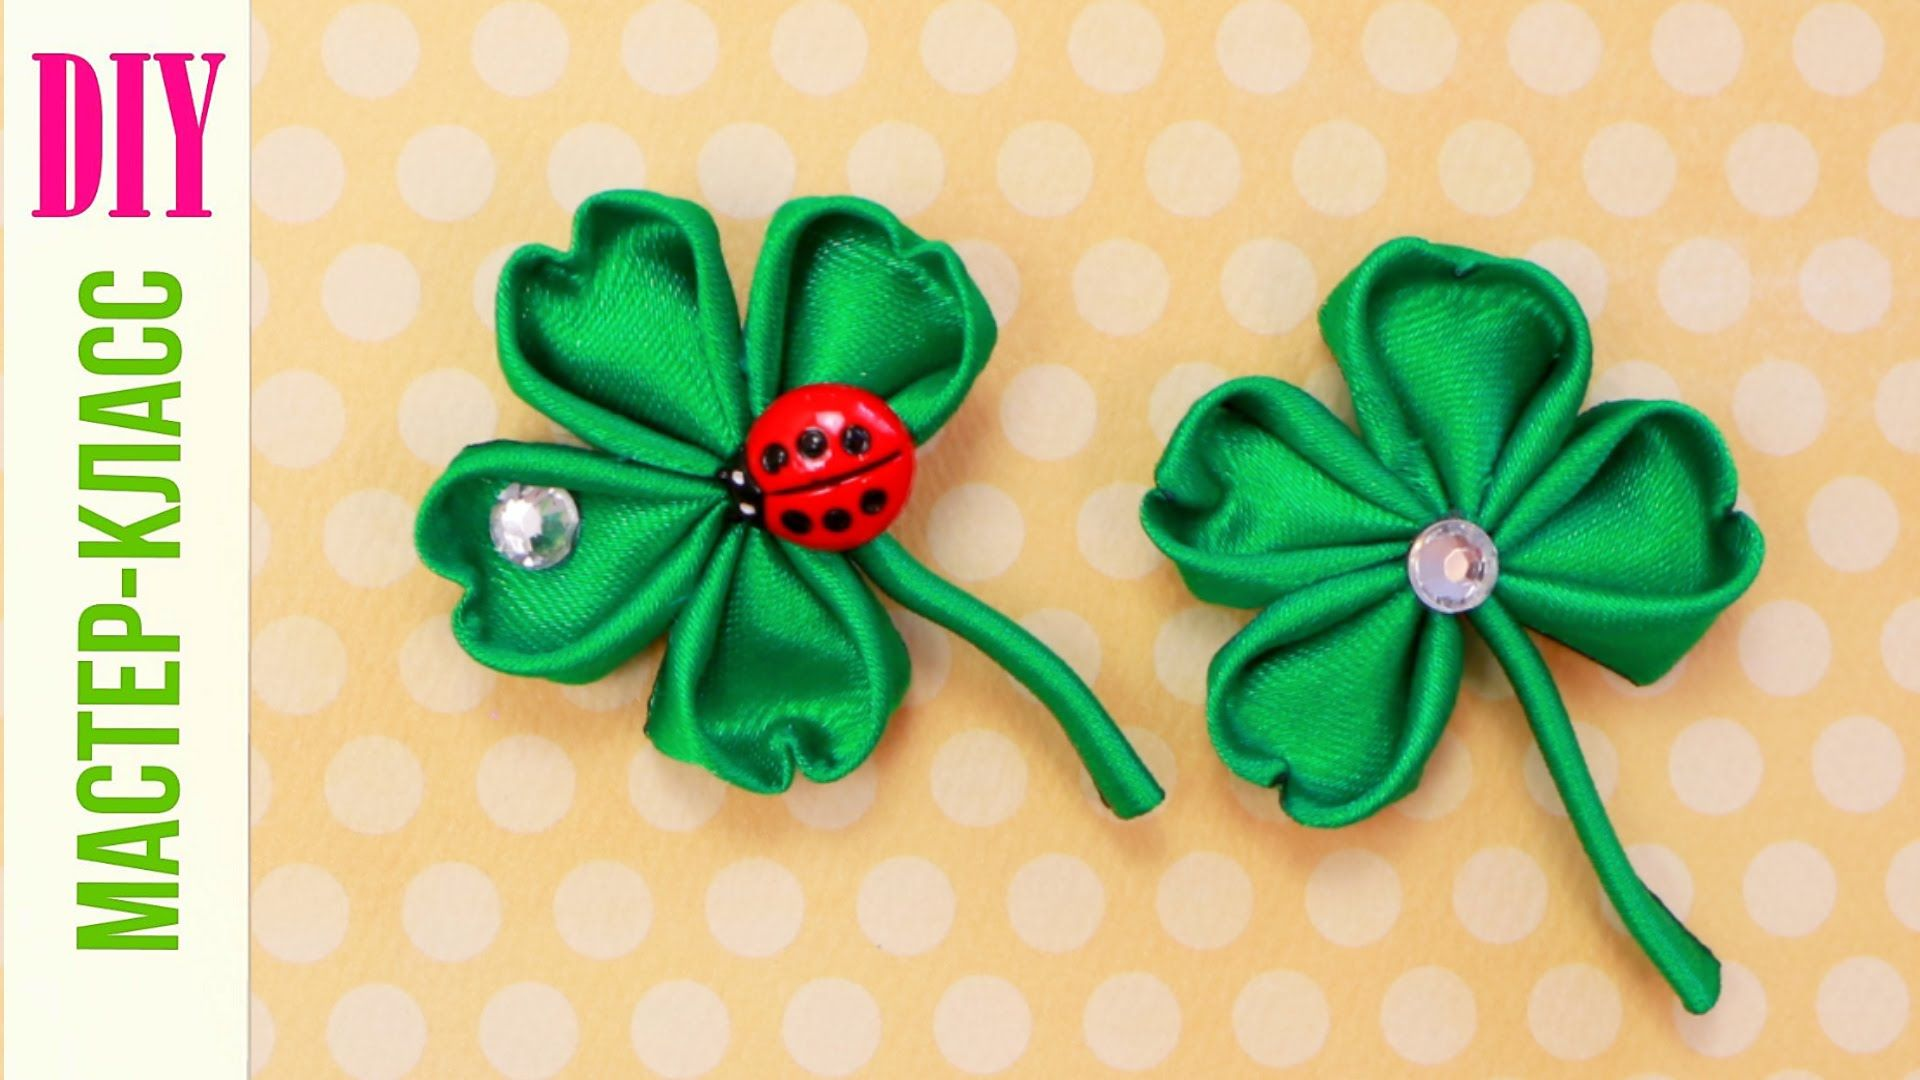 DIY: Easy Lucky Clover / Kanzashi Tutorial from NataliDoma